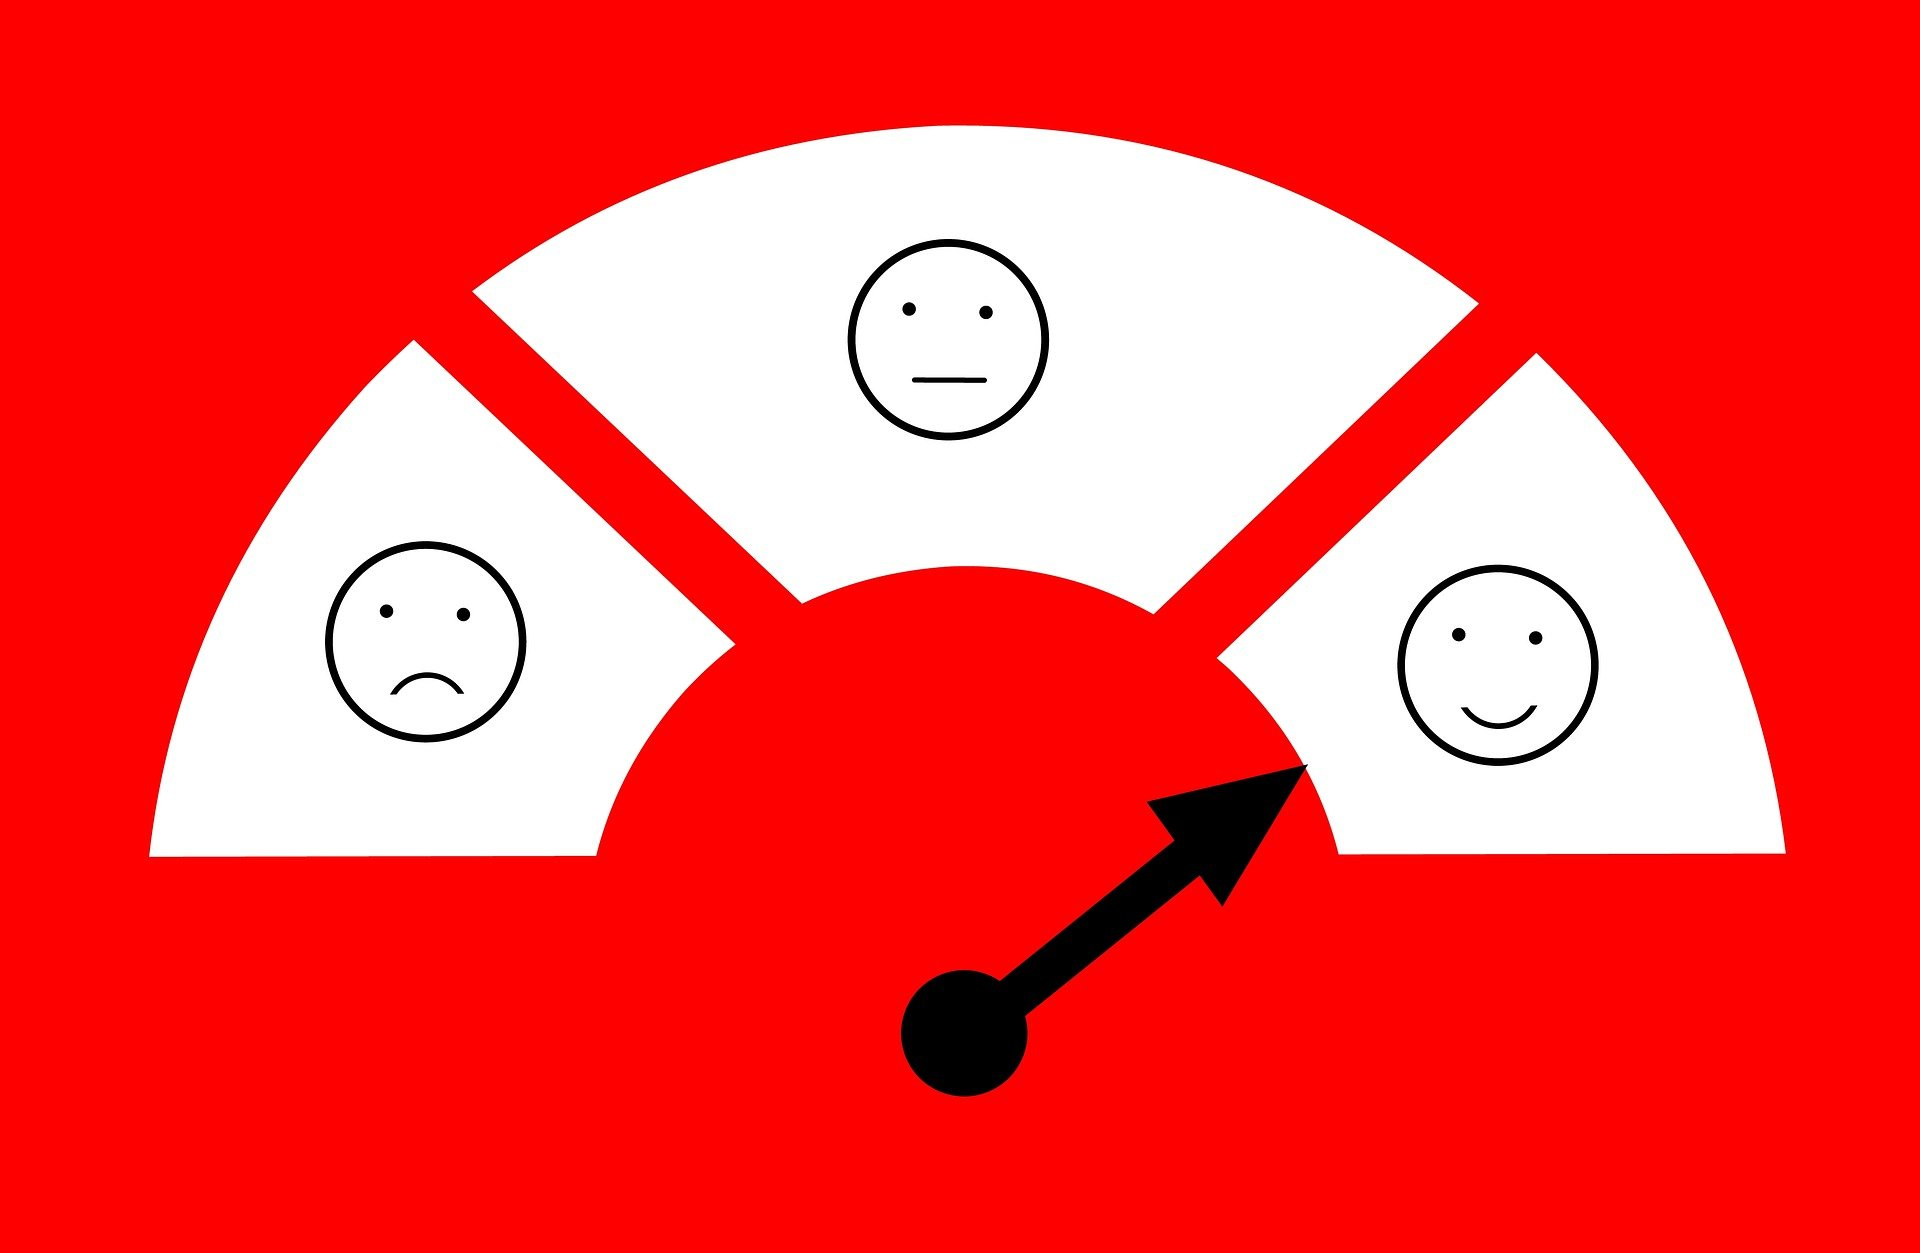 A Satisfaction Chart The 3 States Of Customer Satisfaction With The Needle Pointing To The Happy Customer Icon Customer Experience